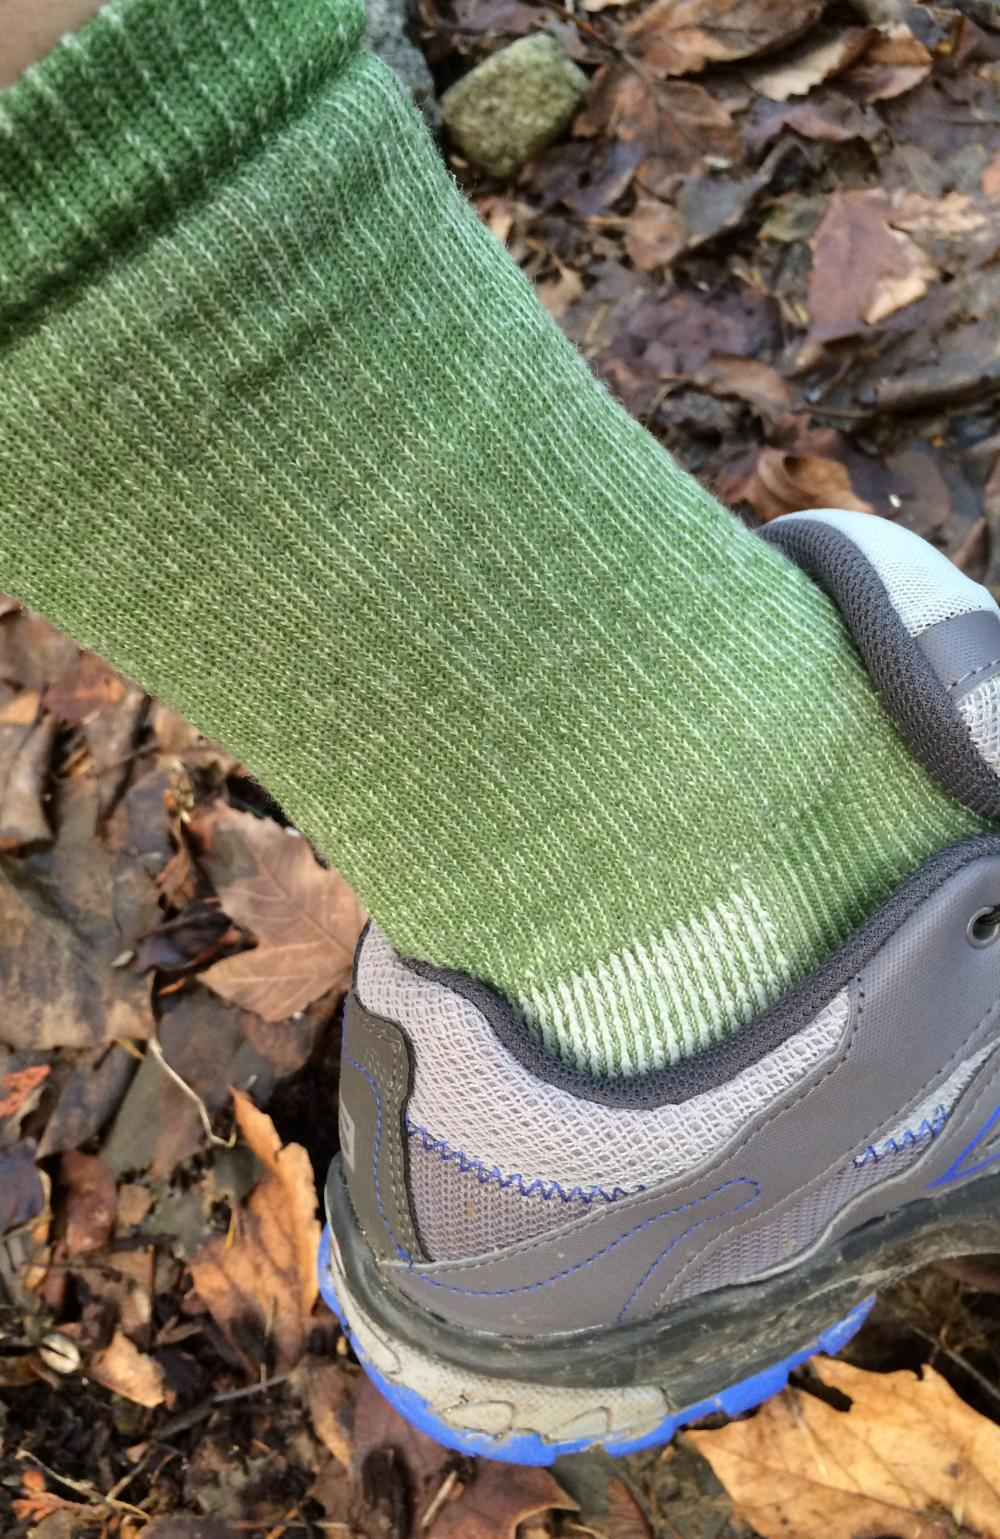 Hiker's calf wearing a green hiking sock